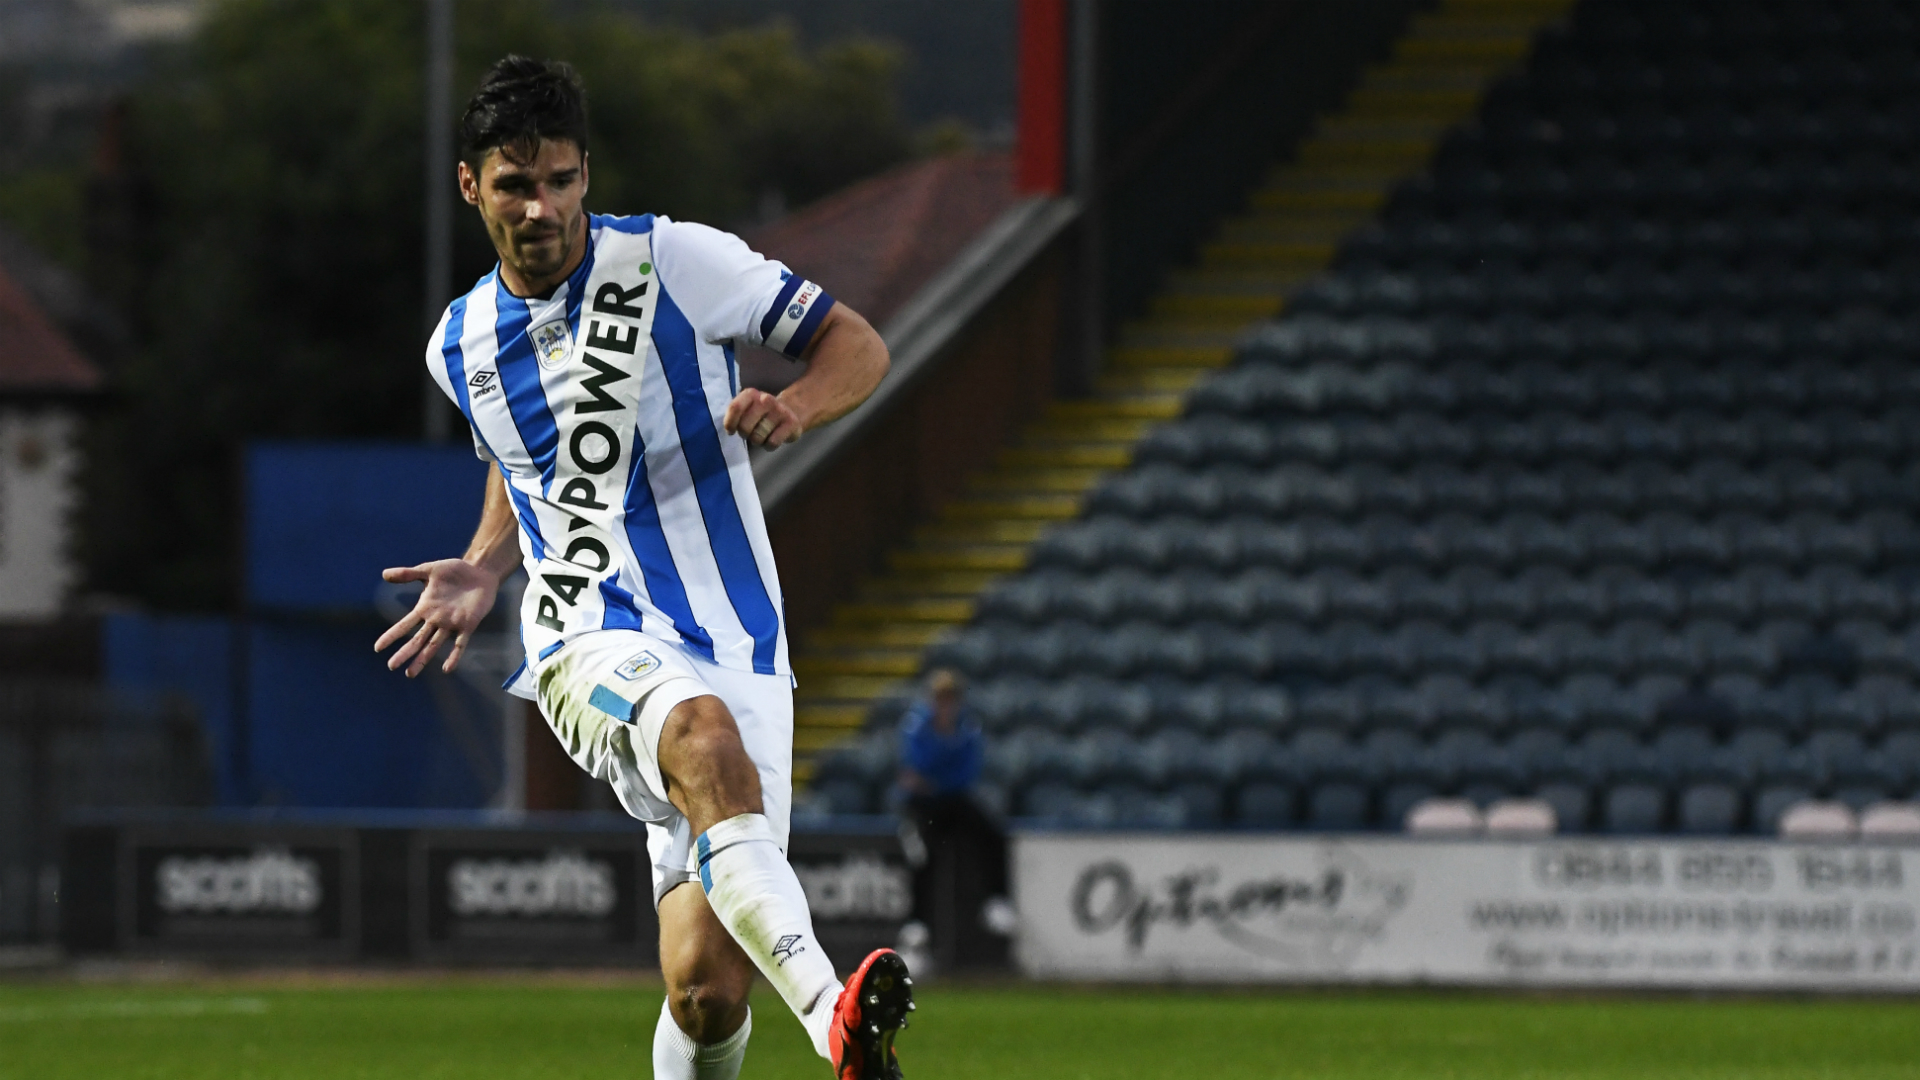 FA contacts Huddersfield Town regarding controversial kit